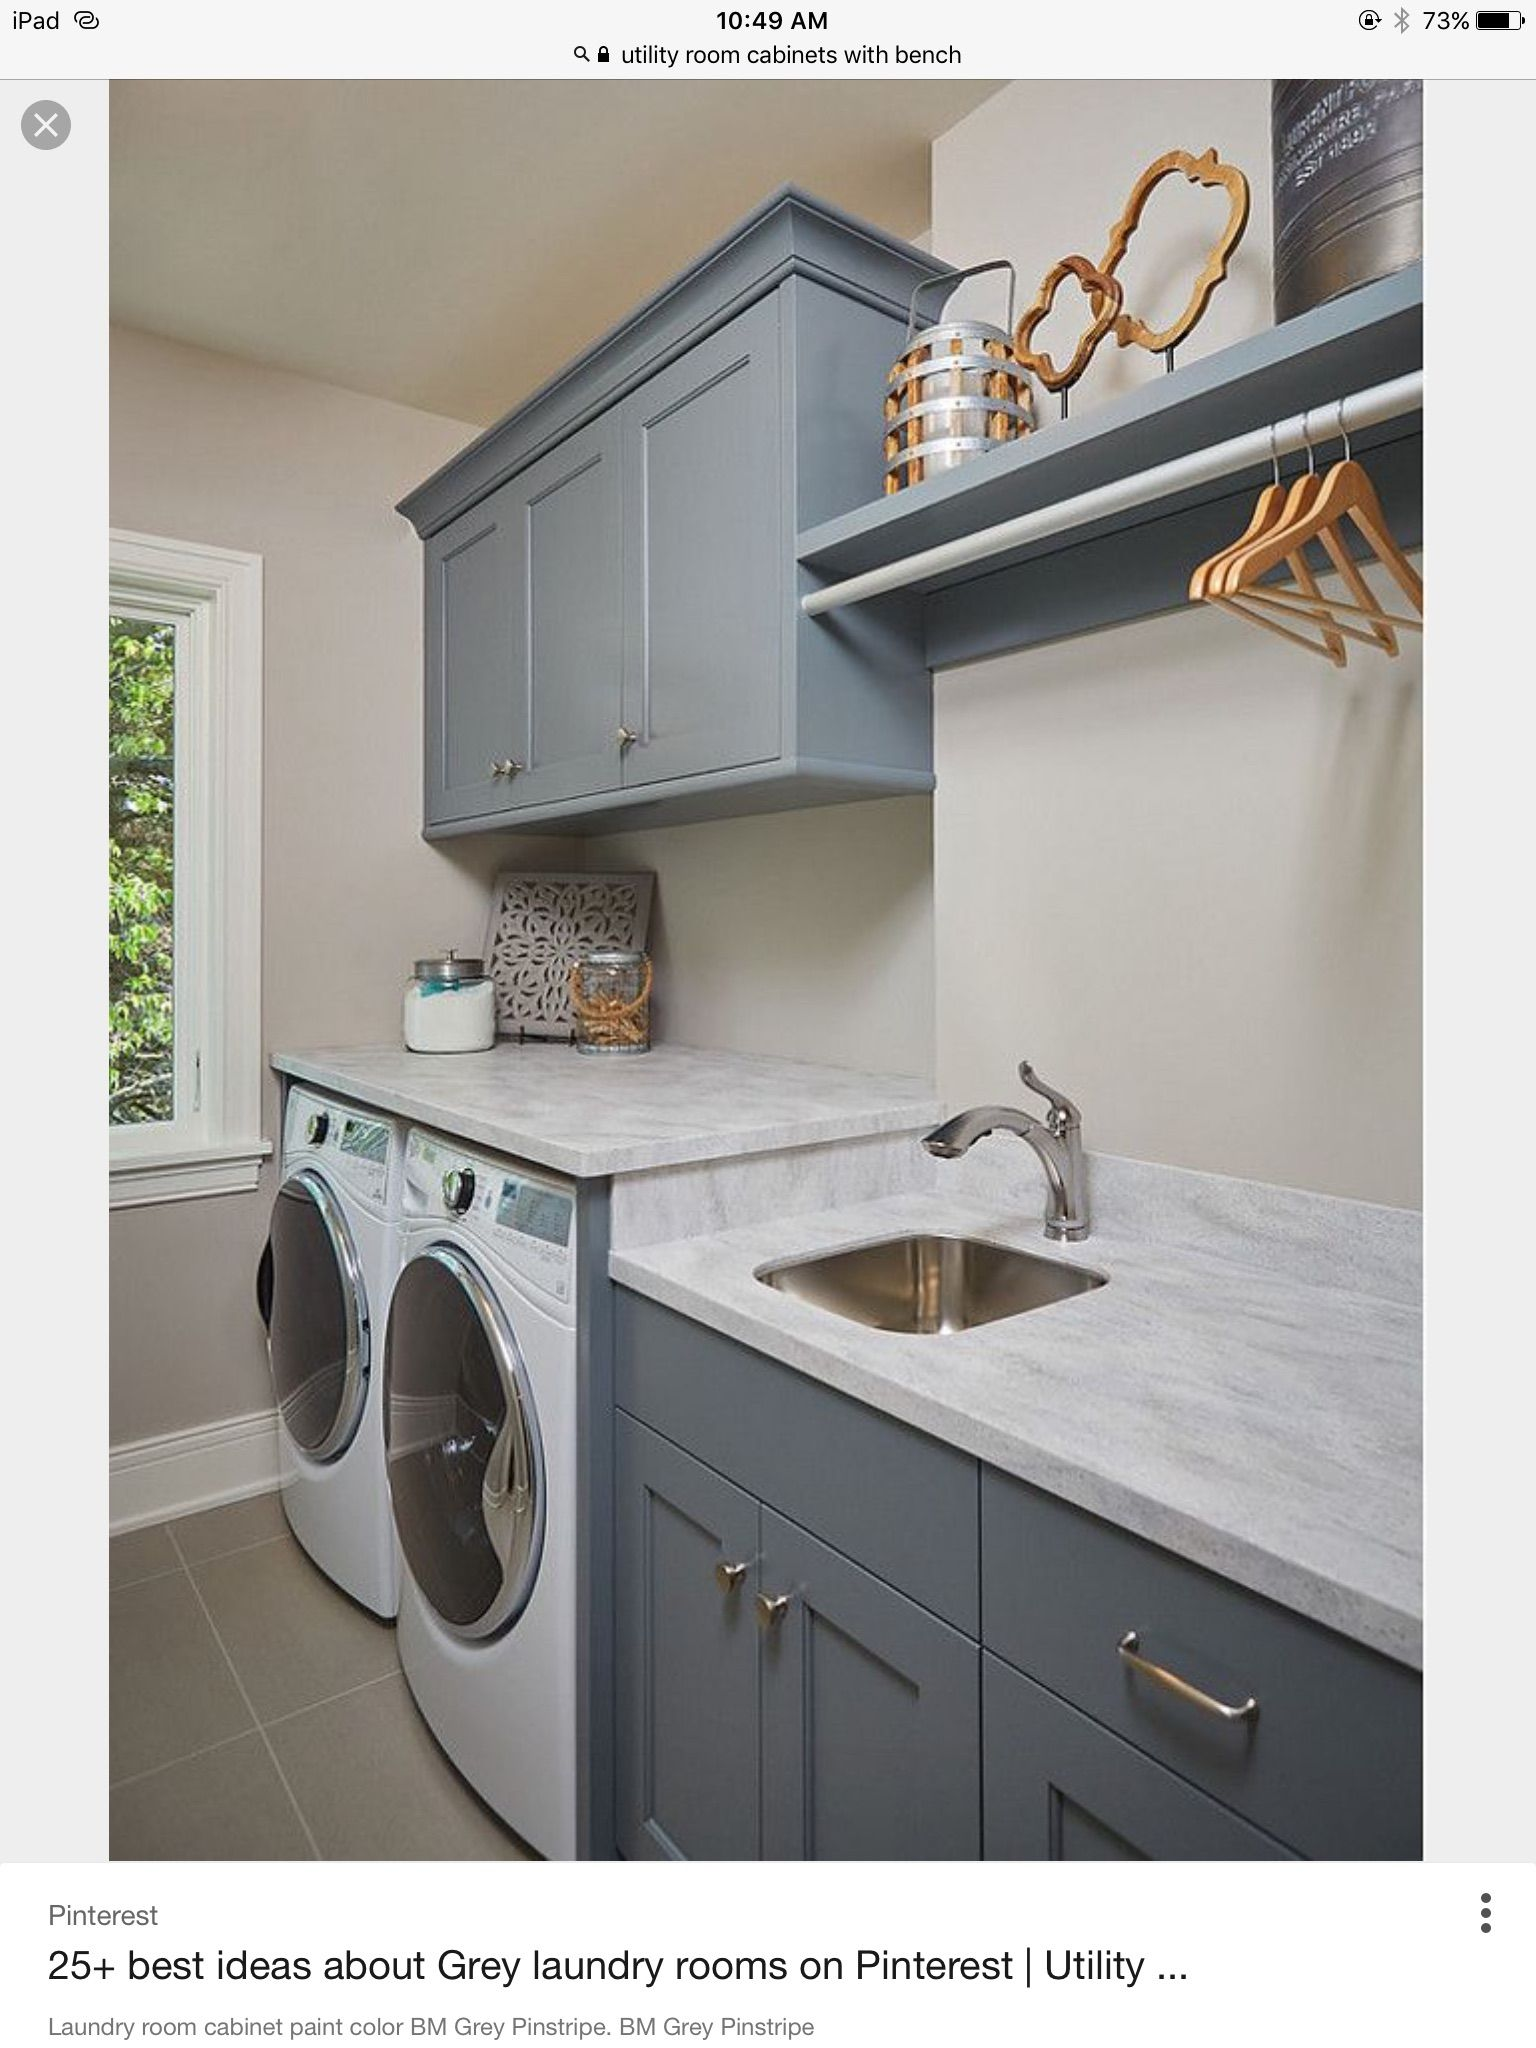 Pin By Kellie Raver On Patty Smothers Grey Laundry Rooms Laundry Room Cabinets Vintage Laundry Room